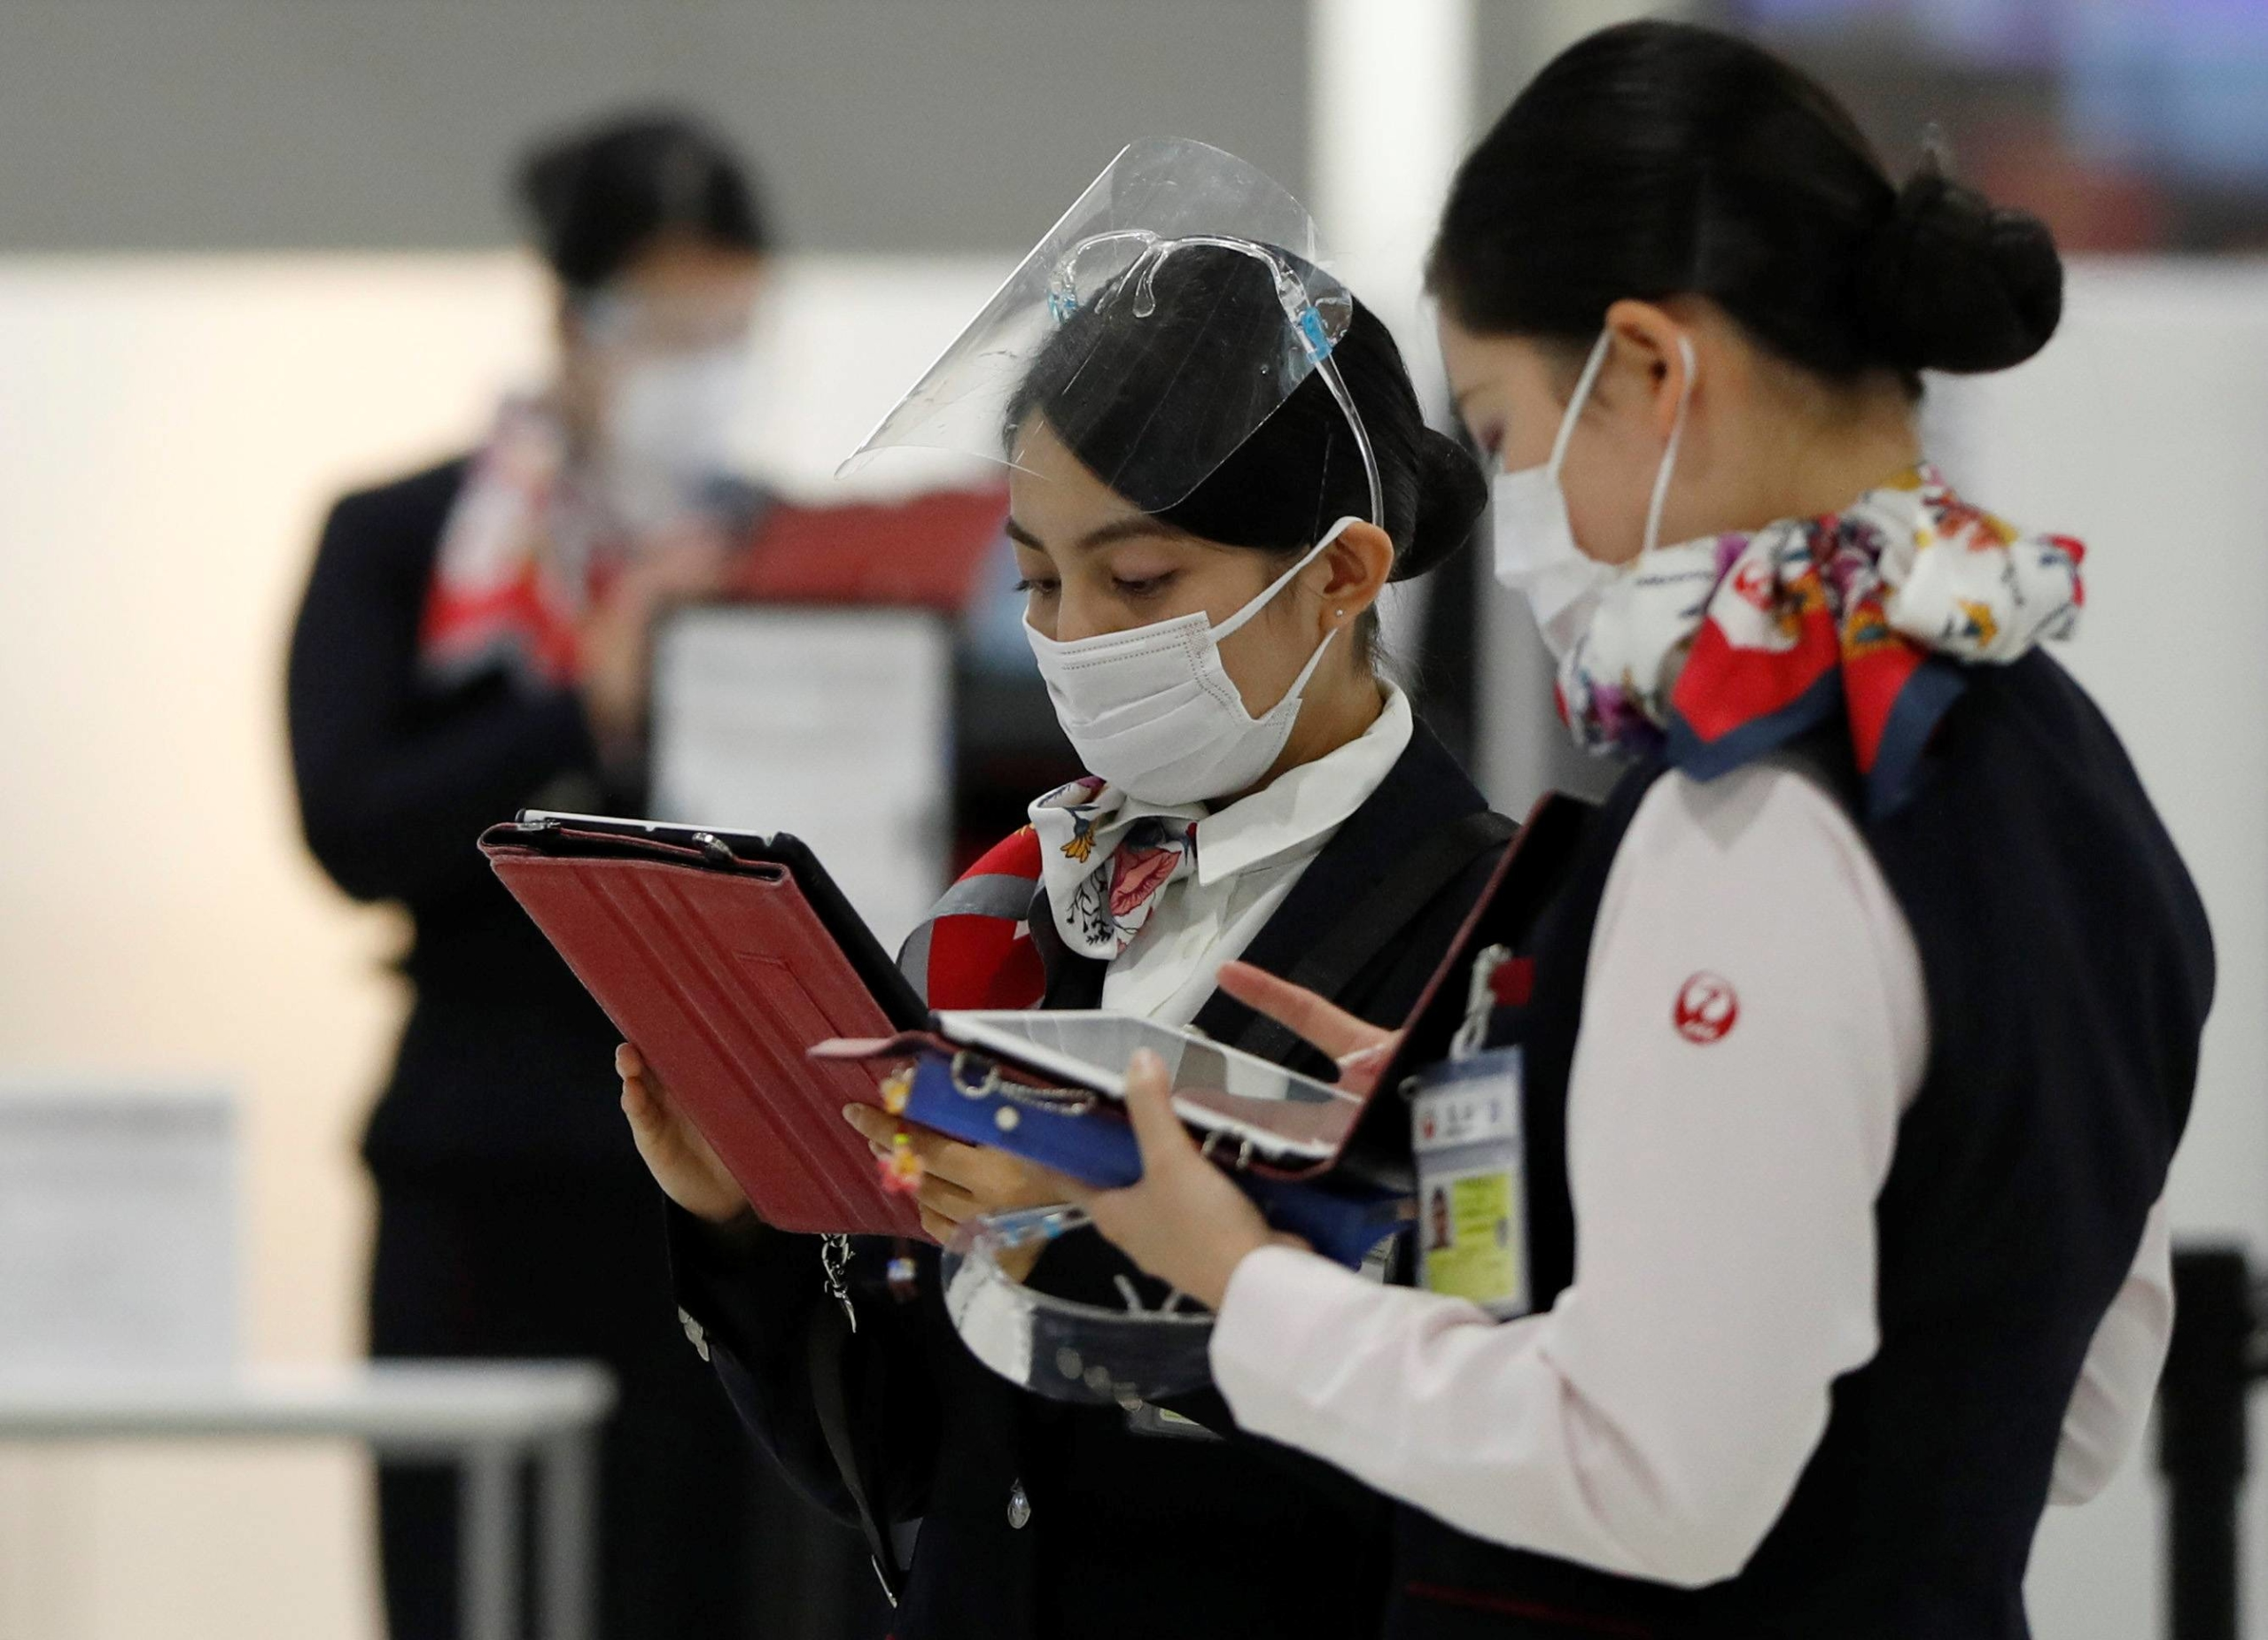 Japan Airlines employees at the departure area in Narita International Airport in Chiba Prefecture | REUTERS